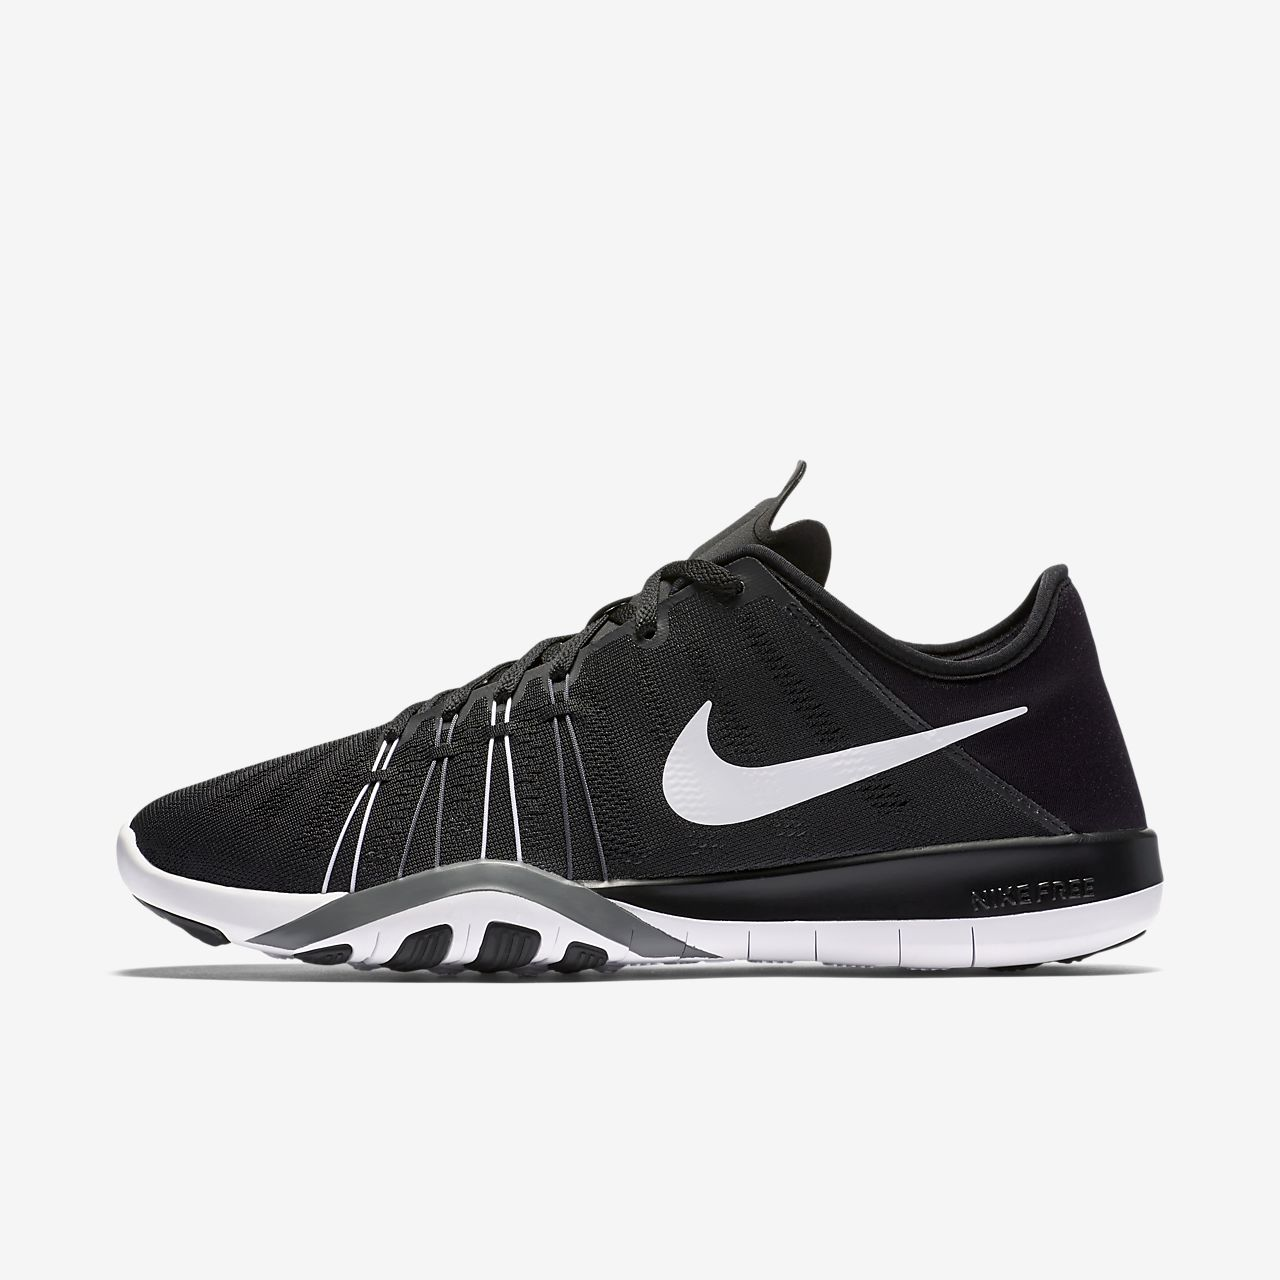 nike free trainer 5.0 tr women's plus size stores near me